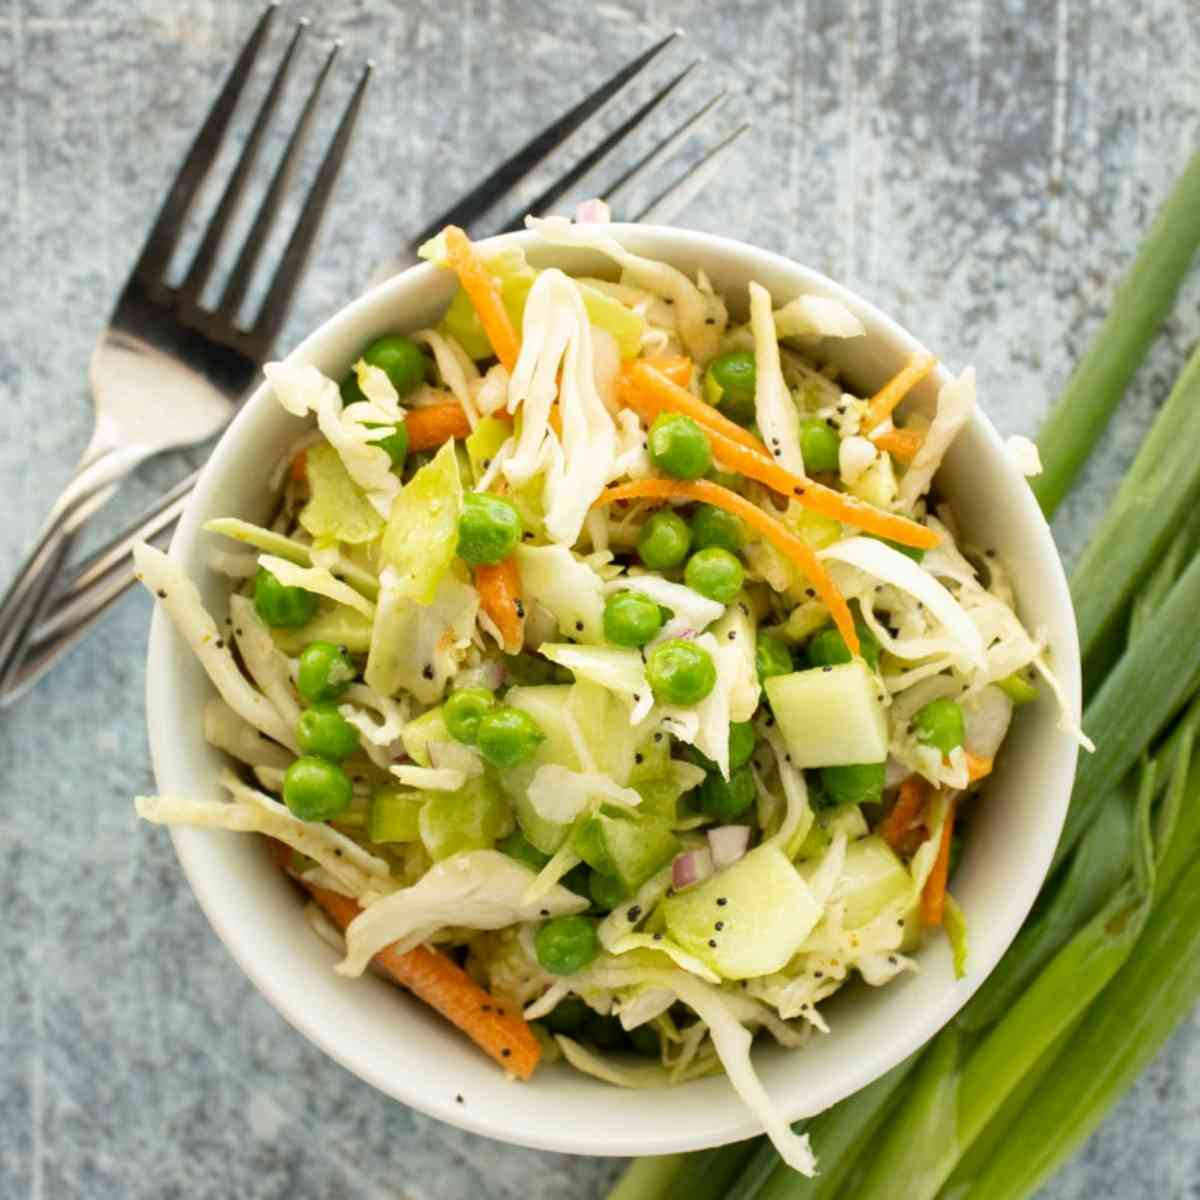 Bowl of poppy seed coleslaw garnished with green onions.